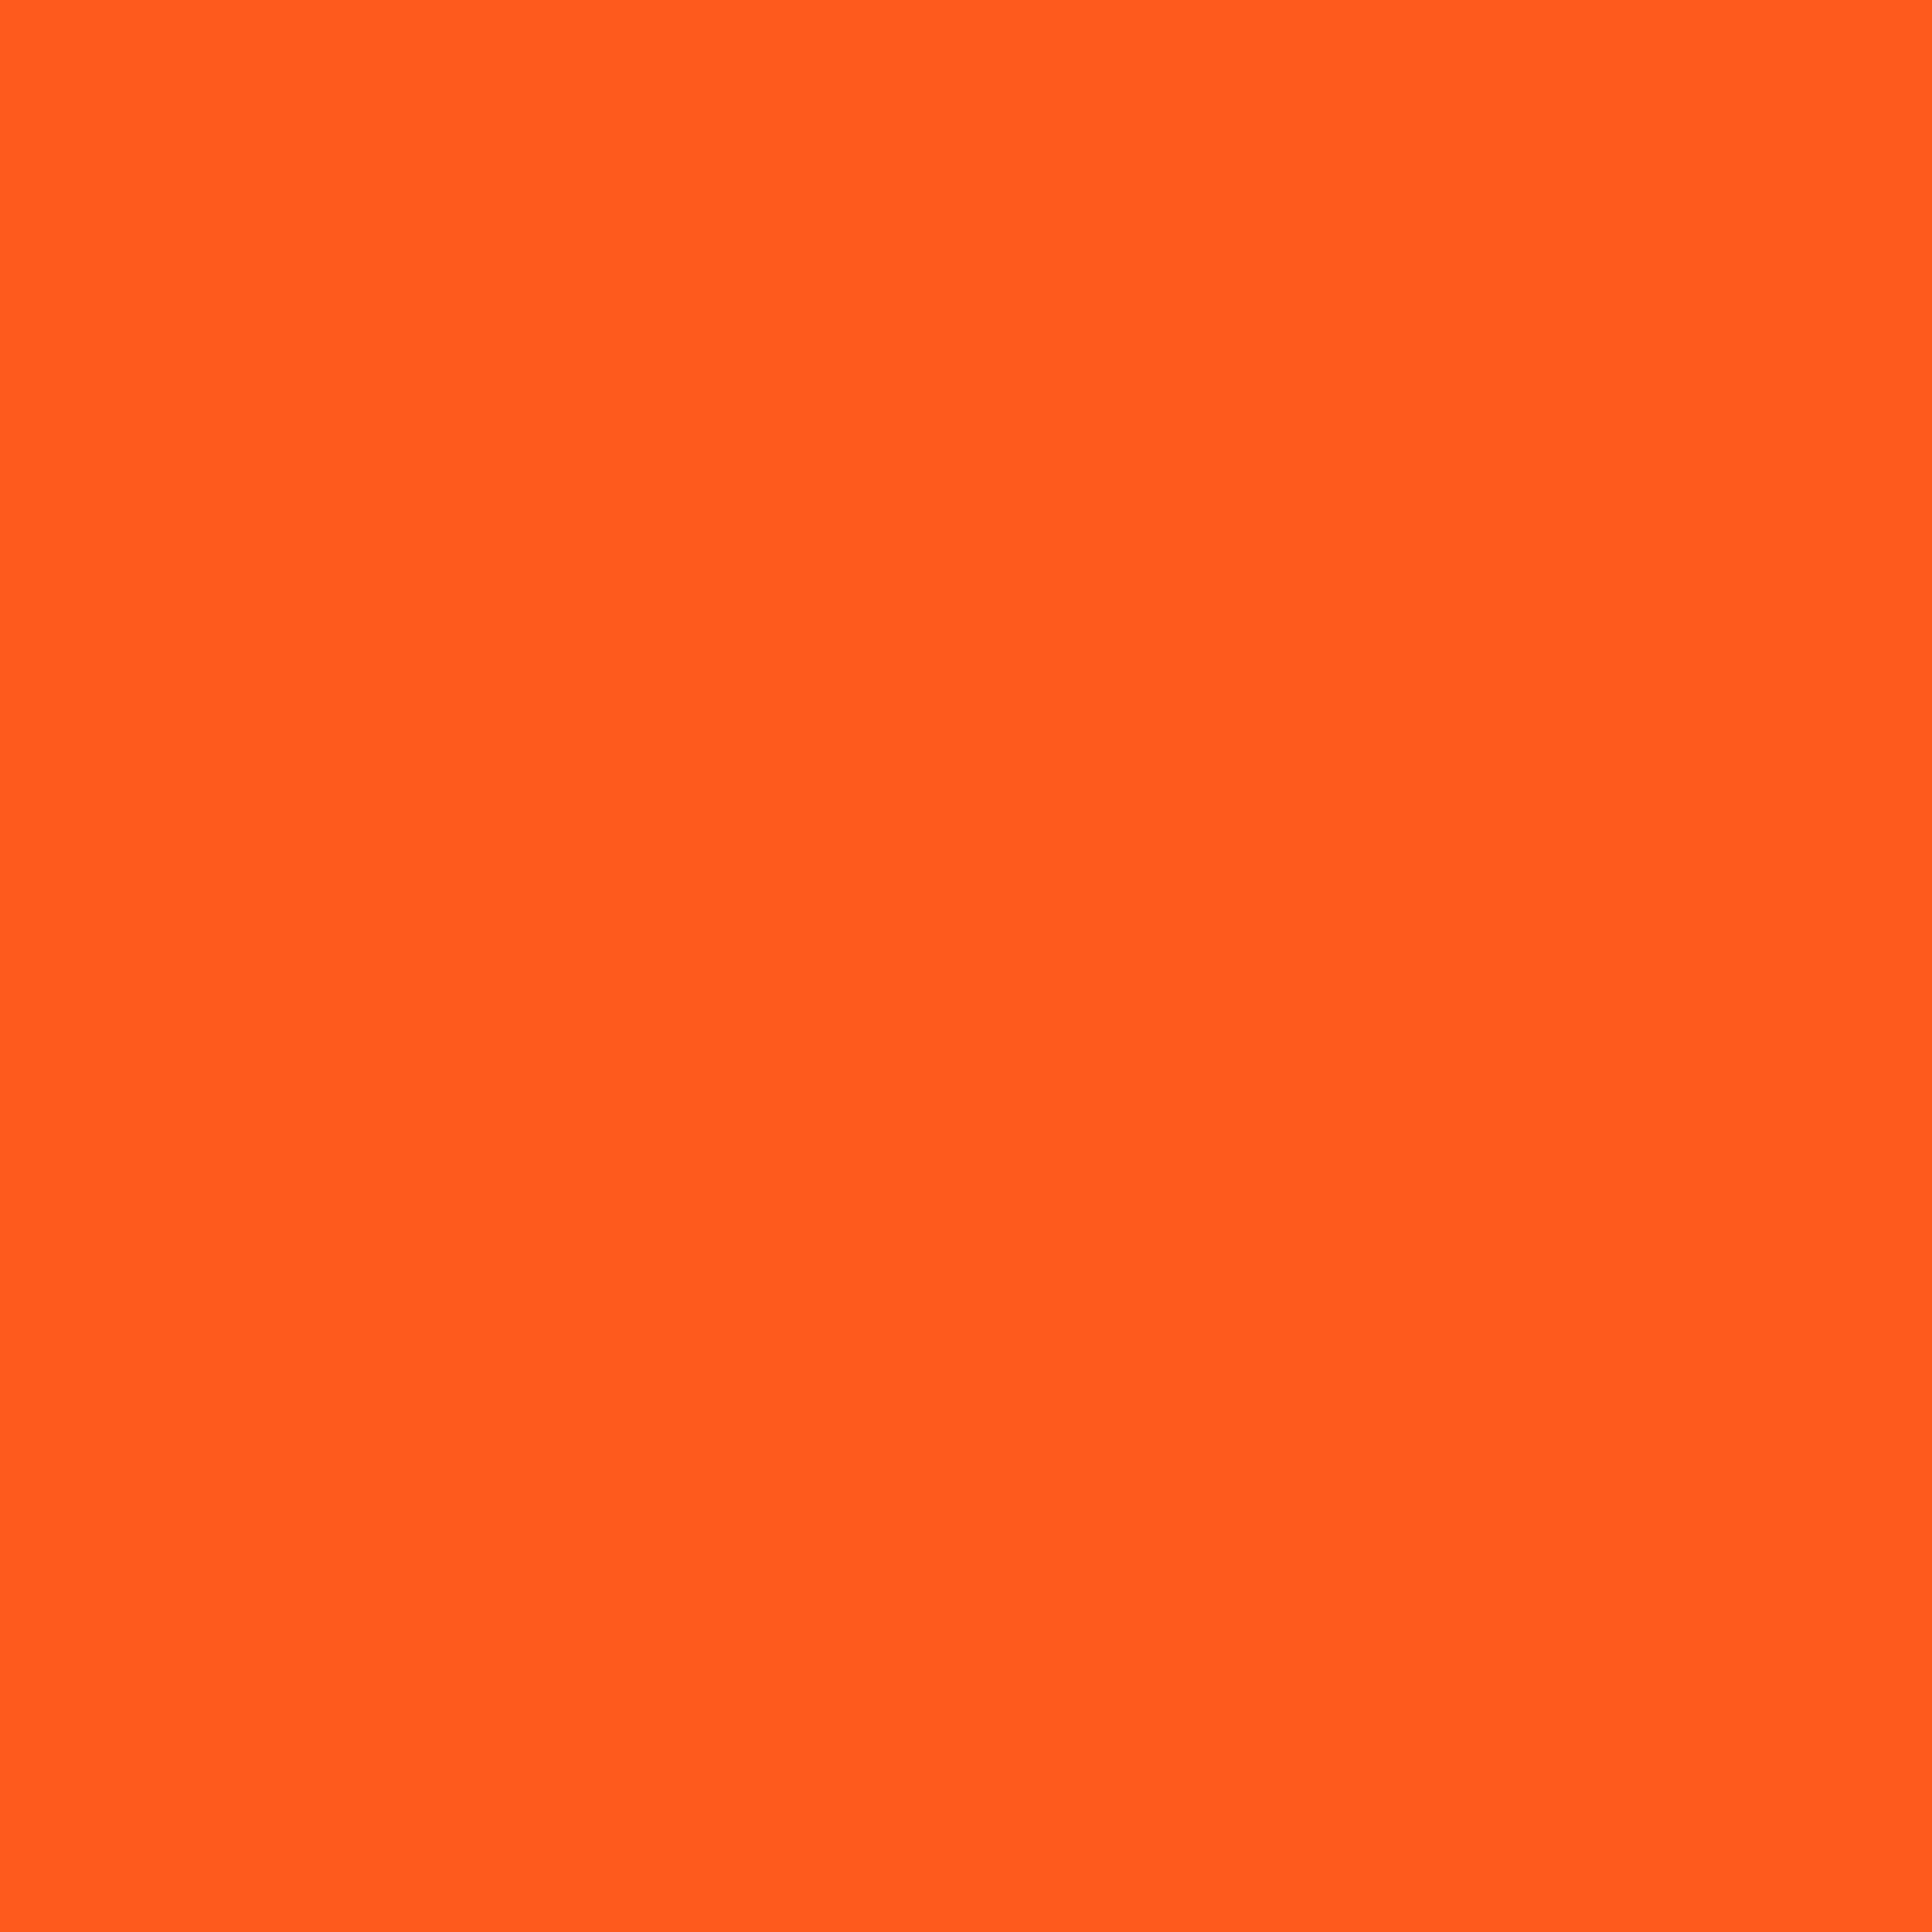 3600x3600 Giants Orange Solid Color Background